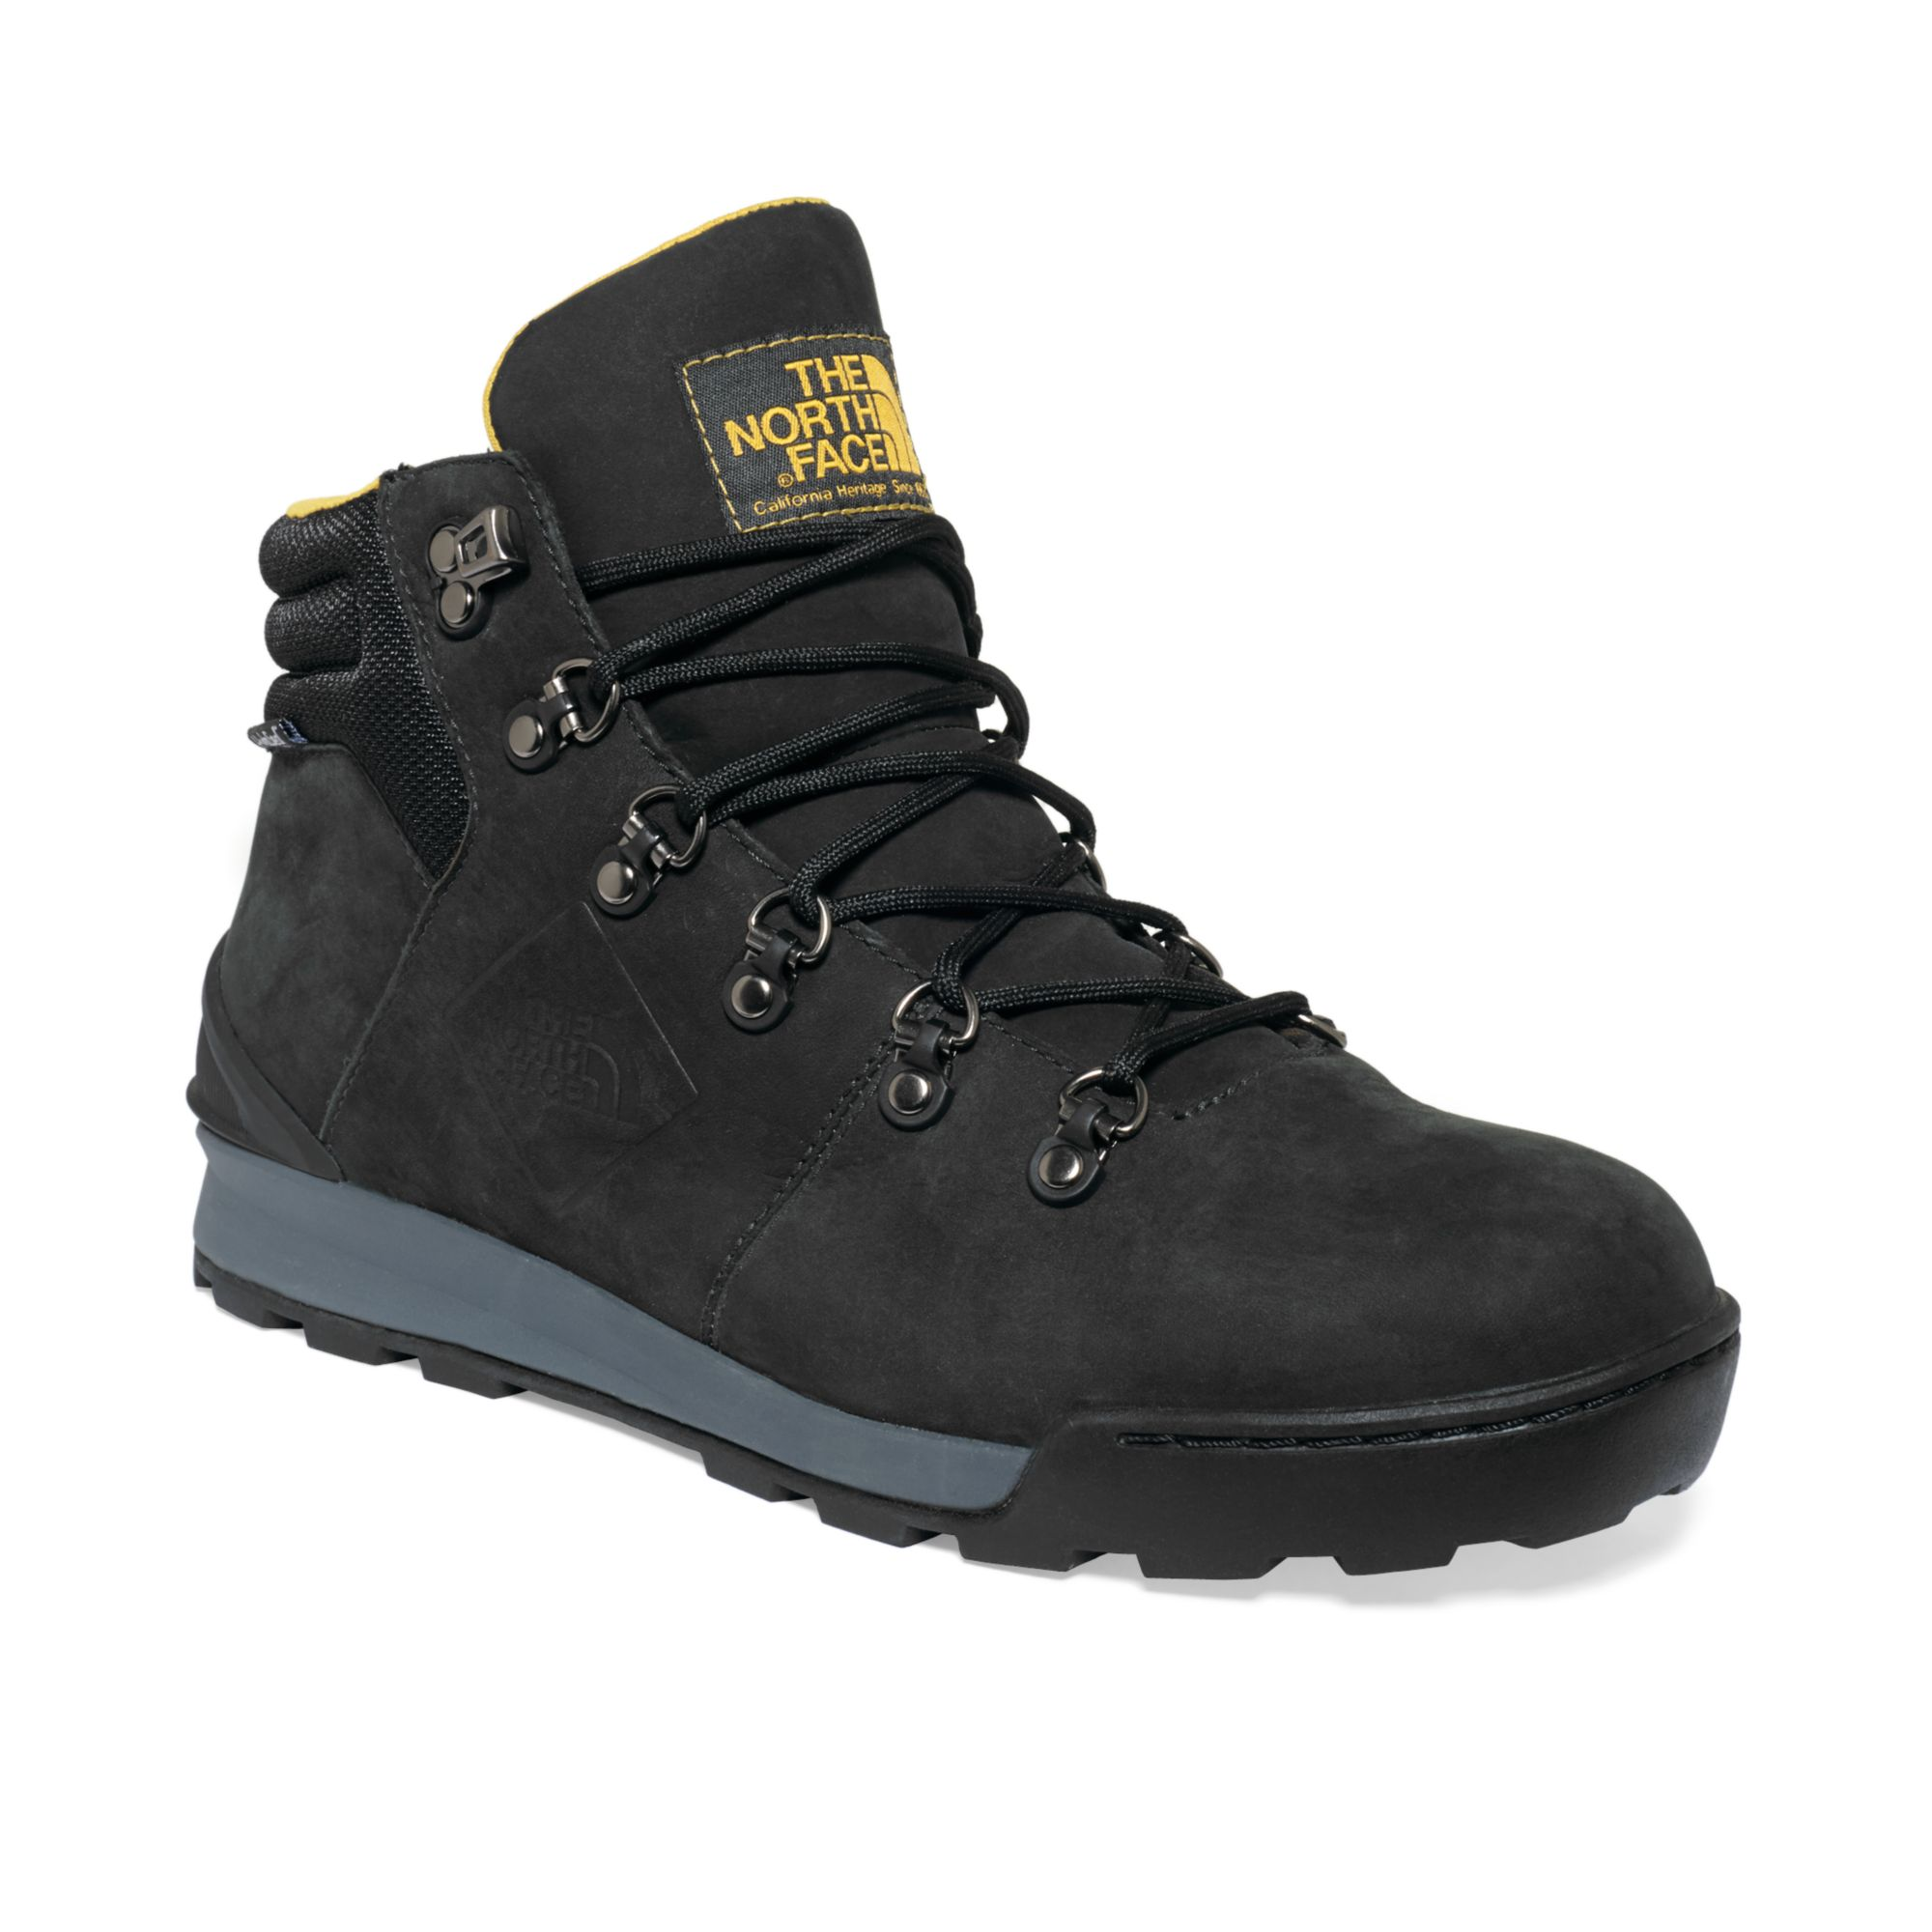 The North Face Waterproof Shoes Men